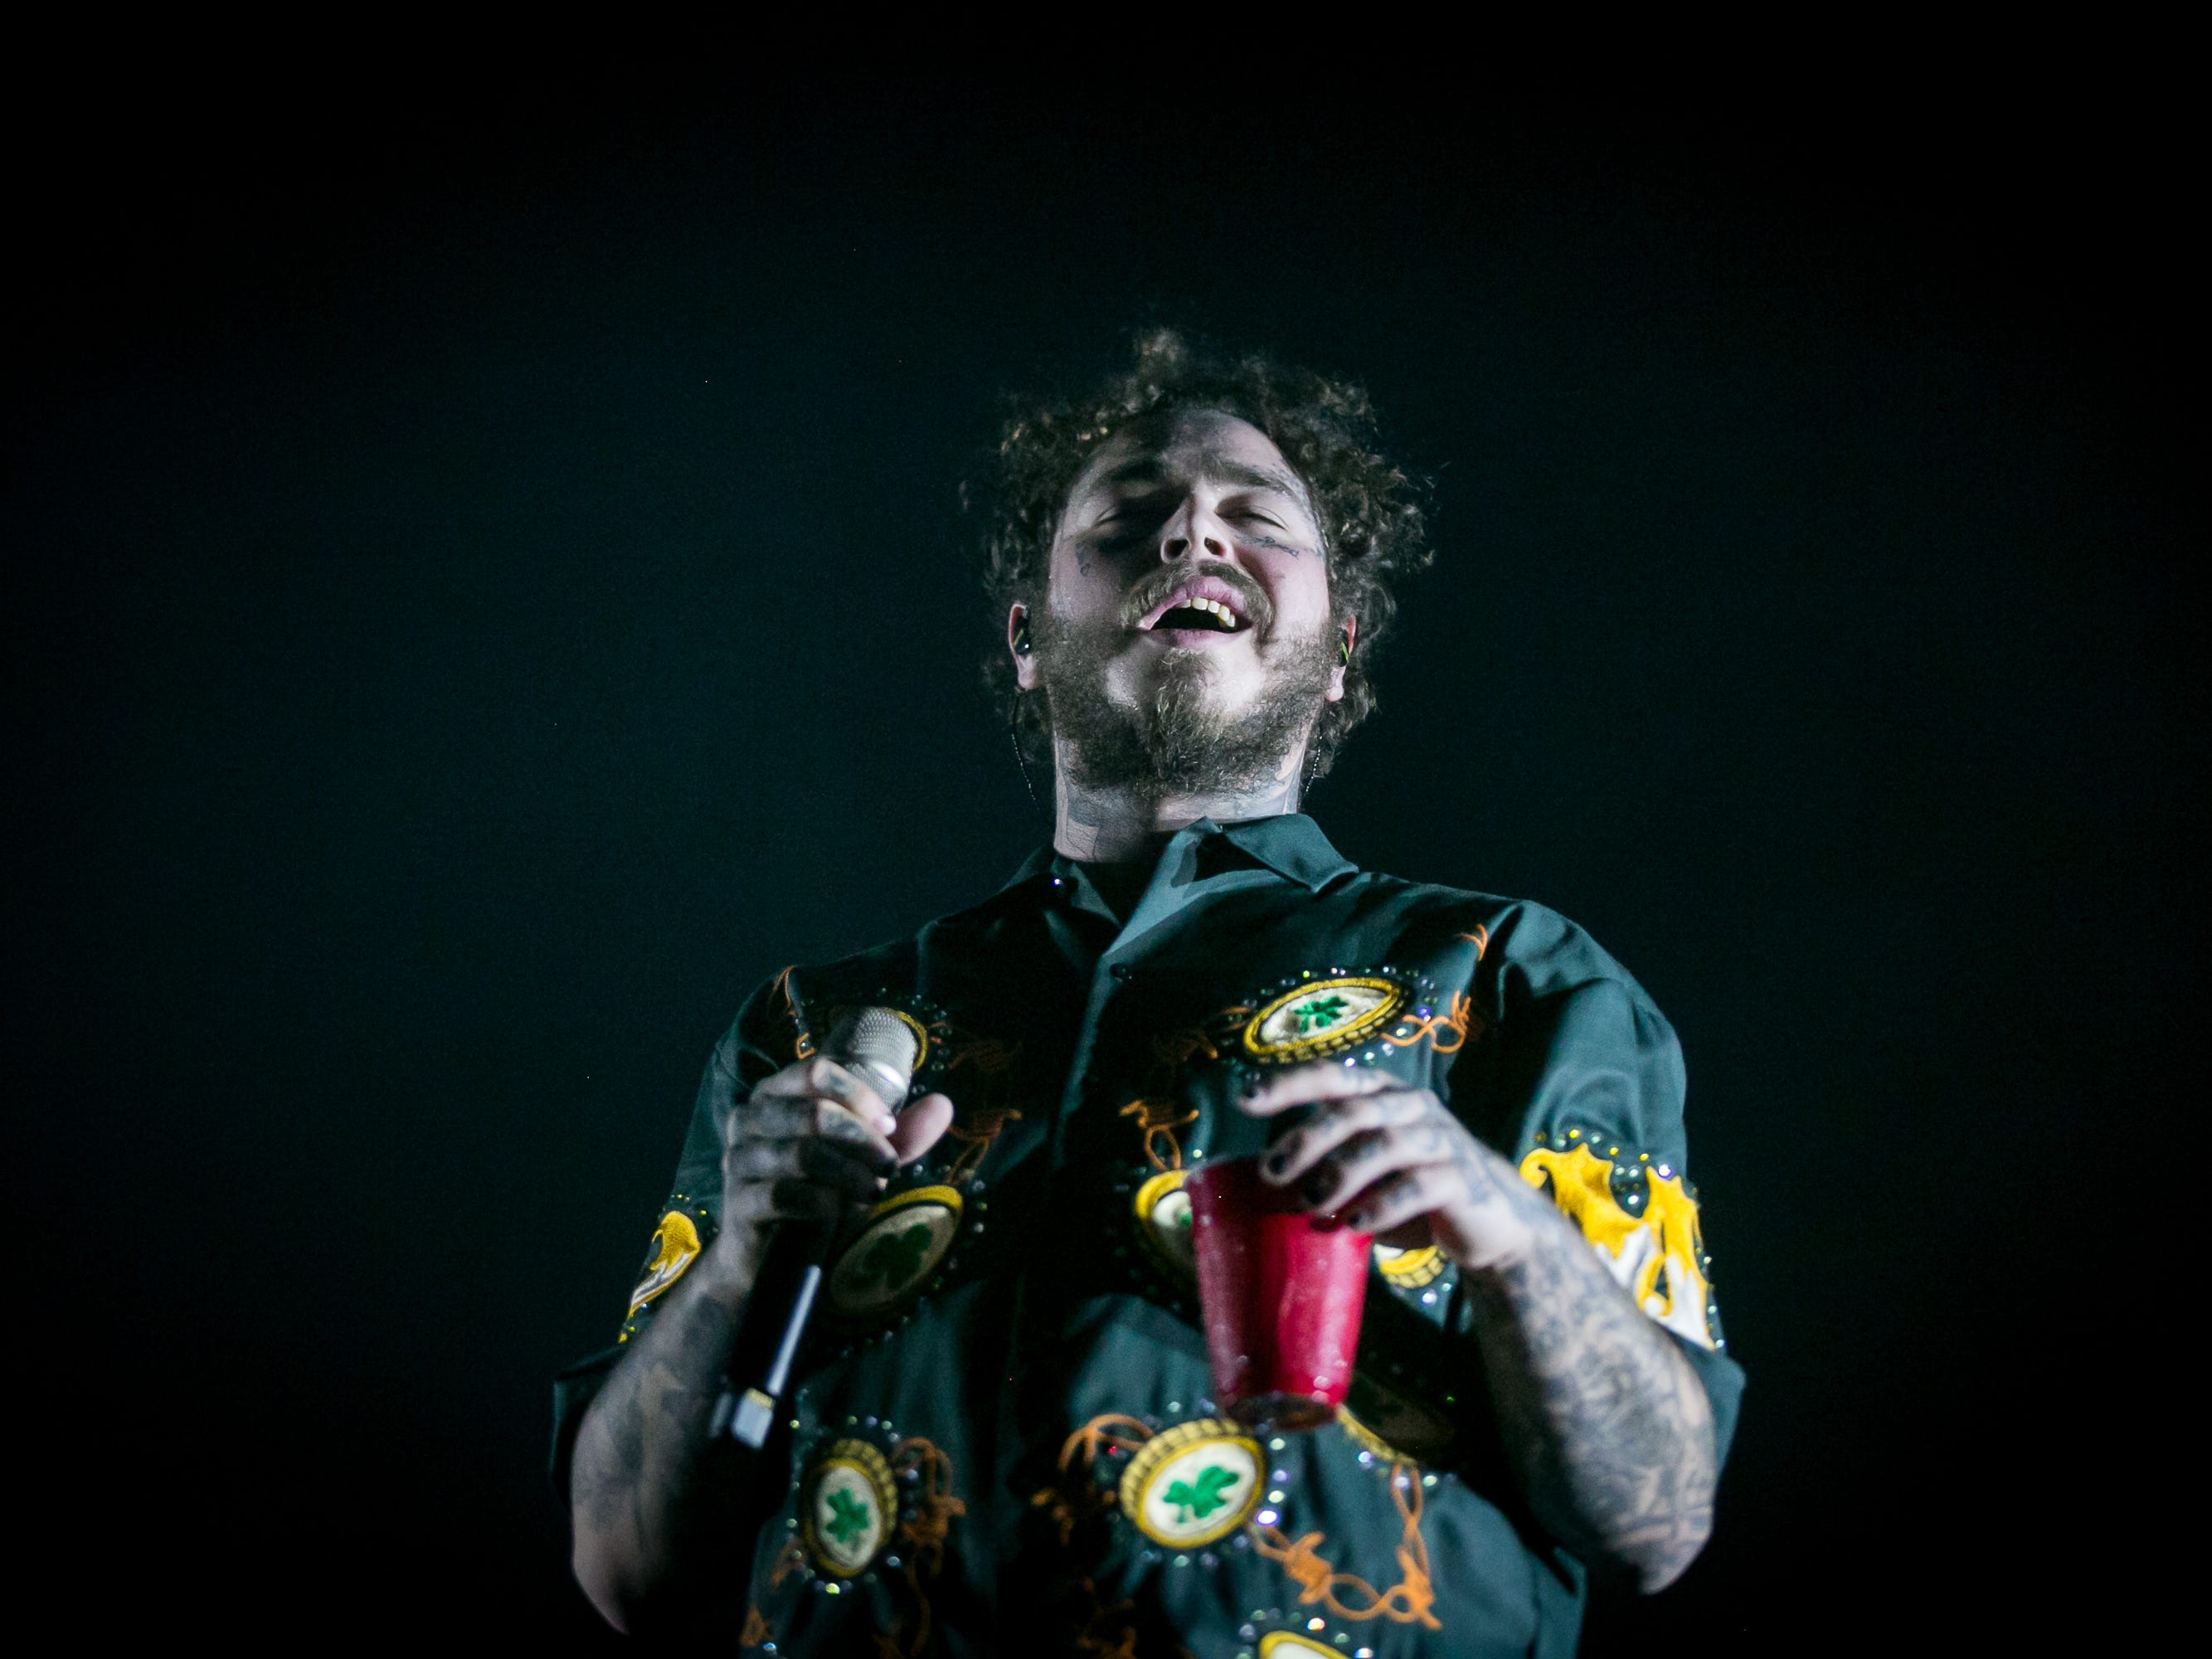 Post Malone performed at Pot of Gold Music Festival on Sunday, March 17, 2019.